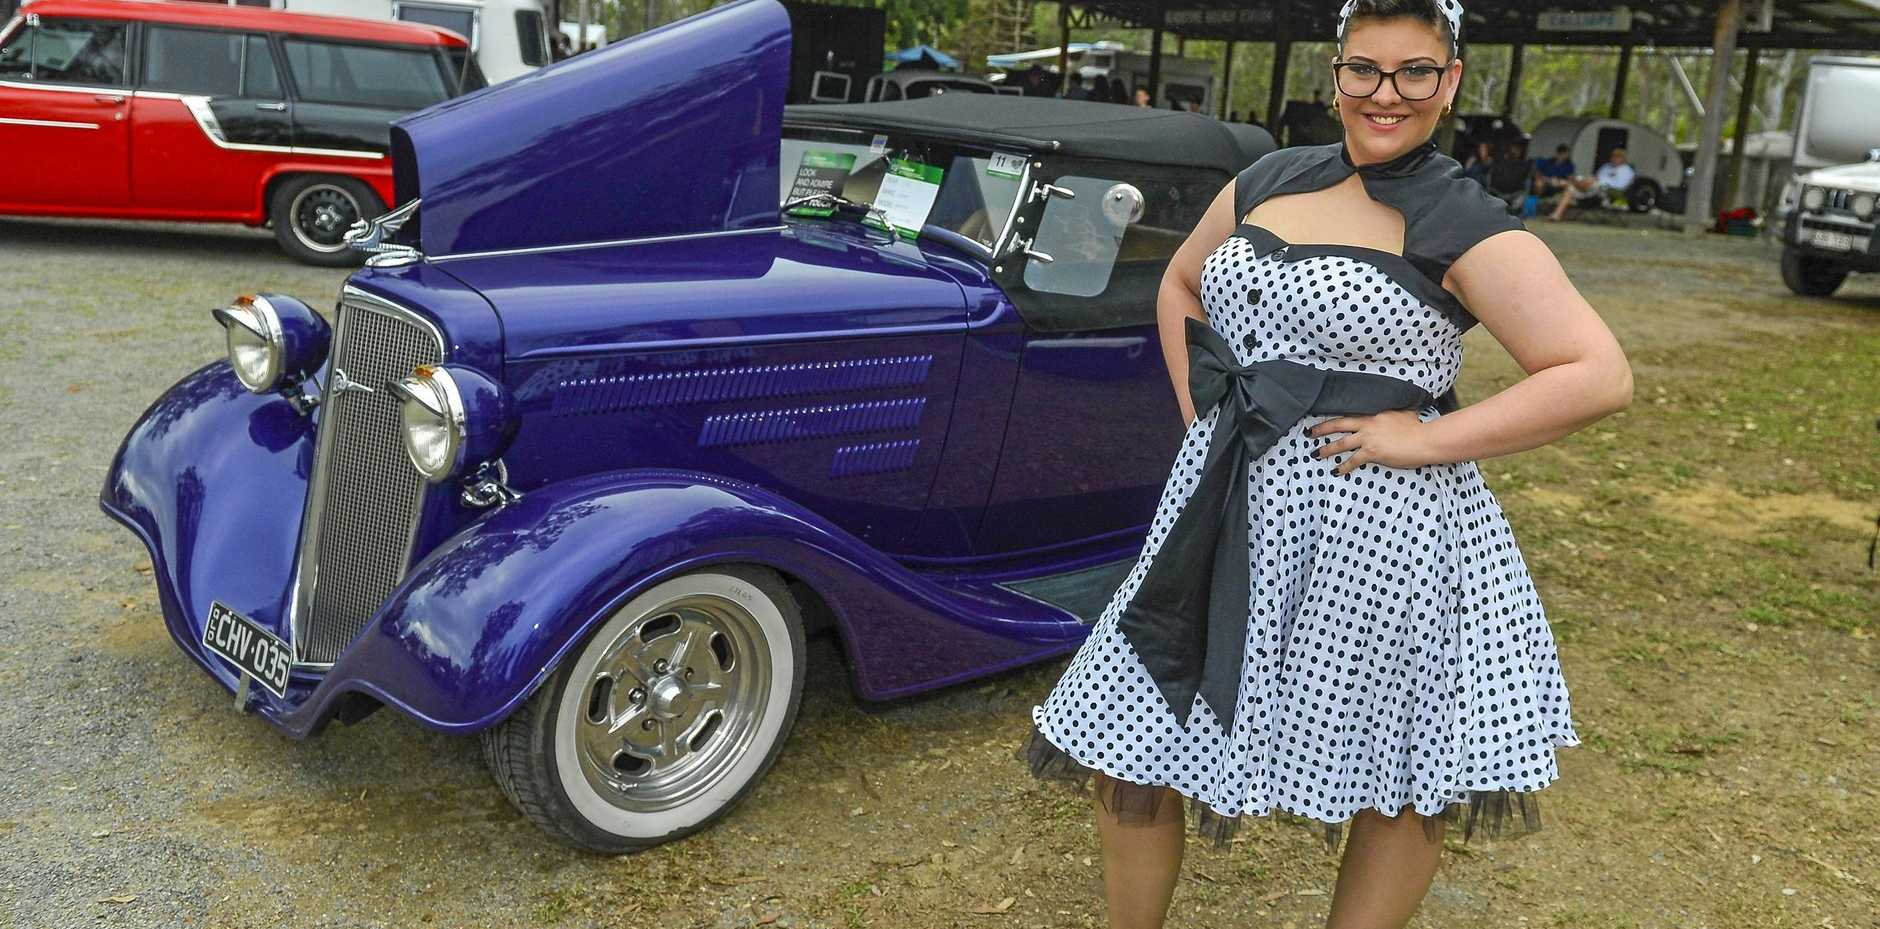 Gallery: Calliope classic cars and hot rods | Observer